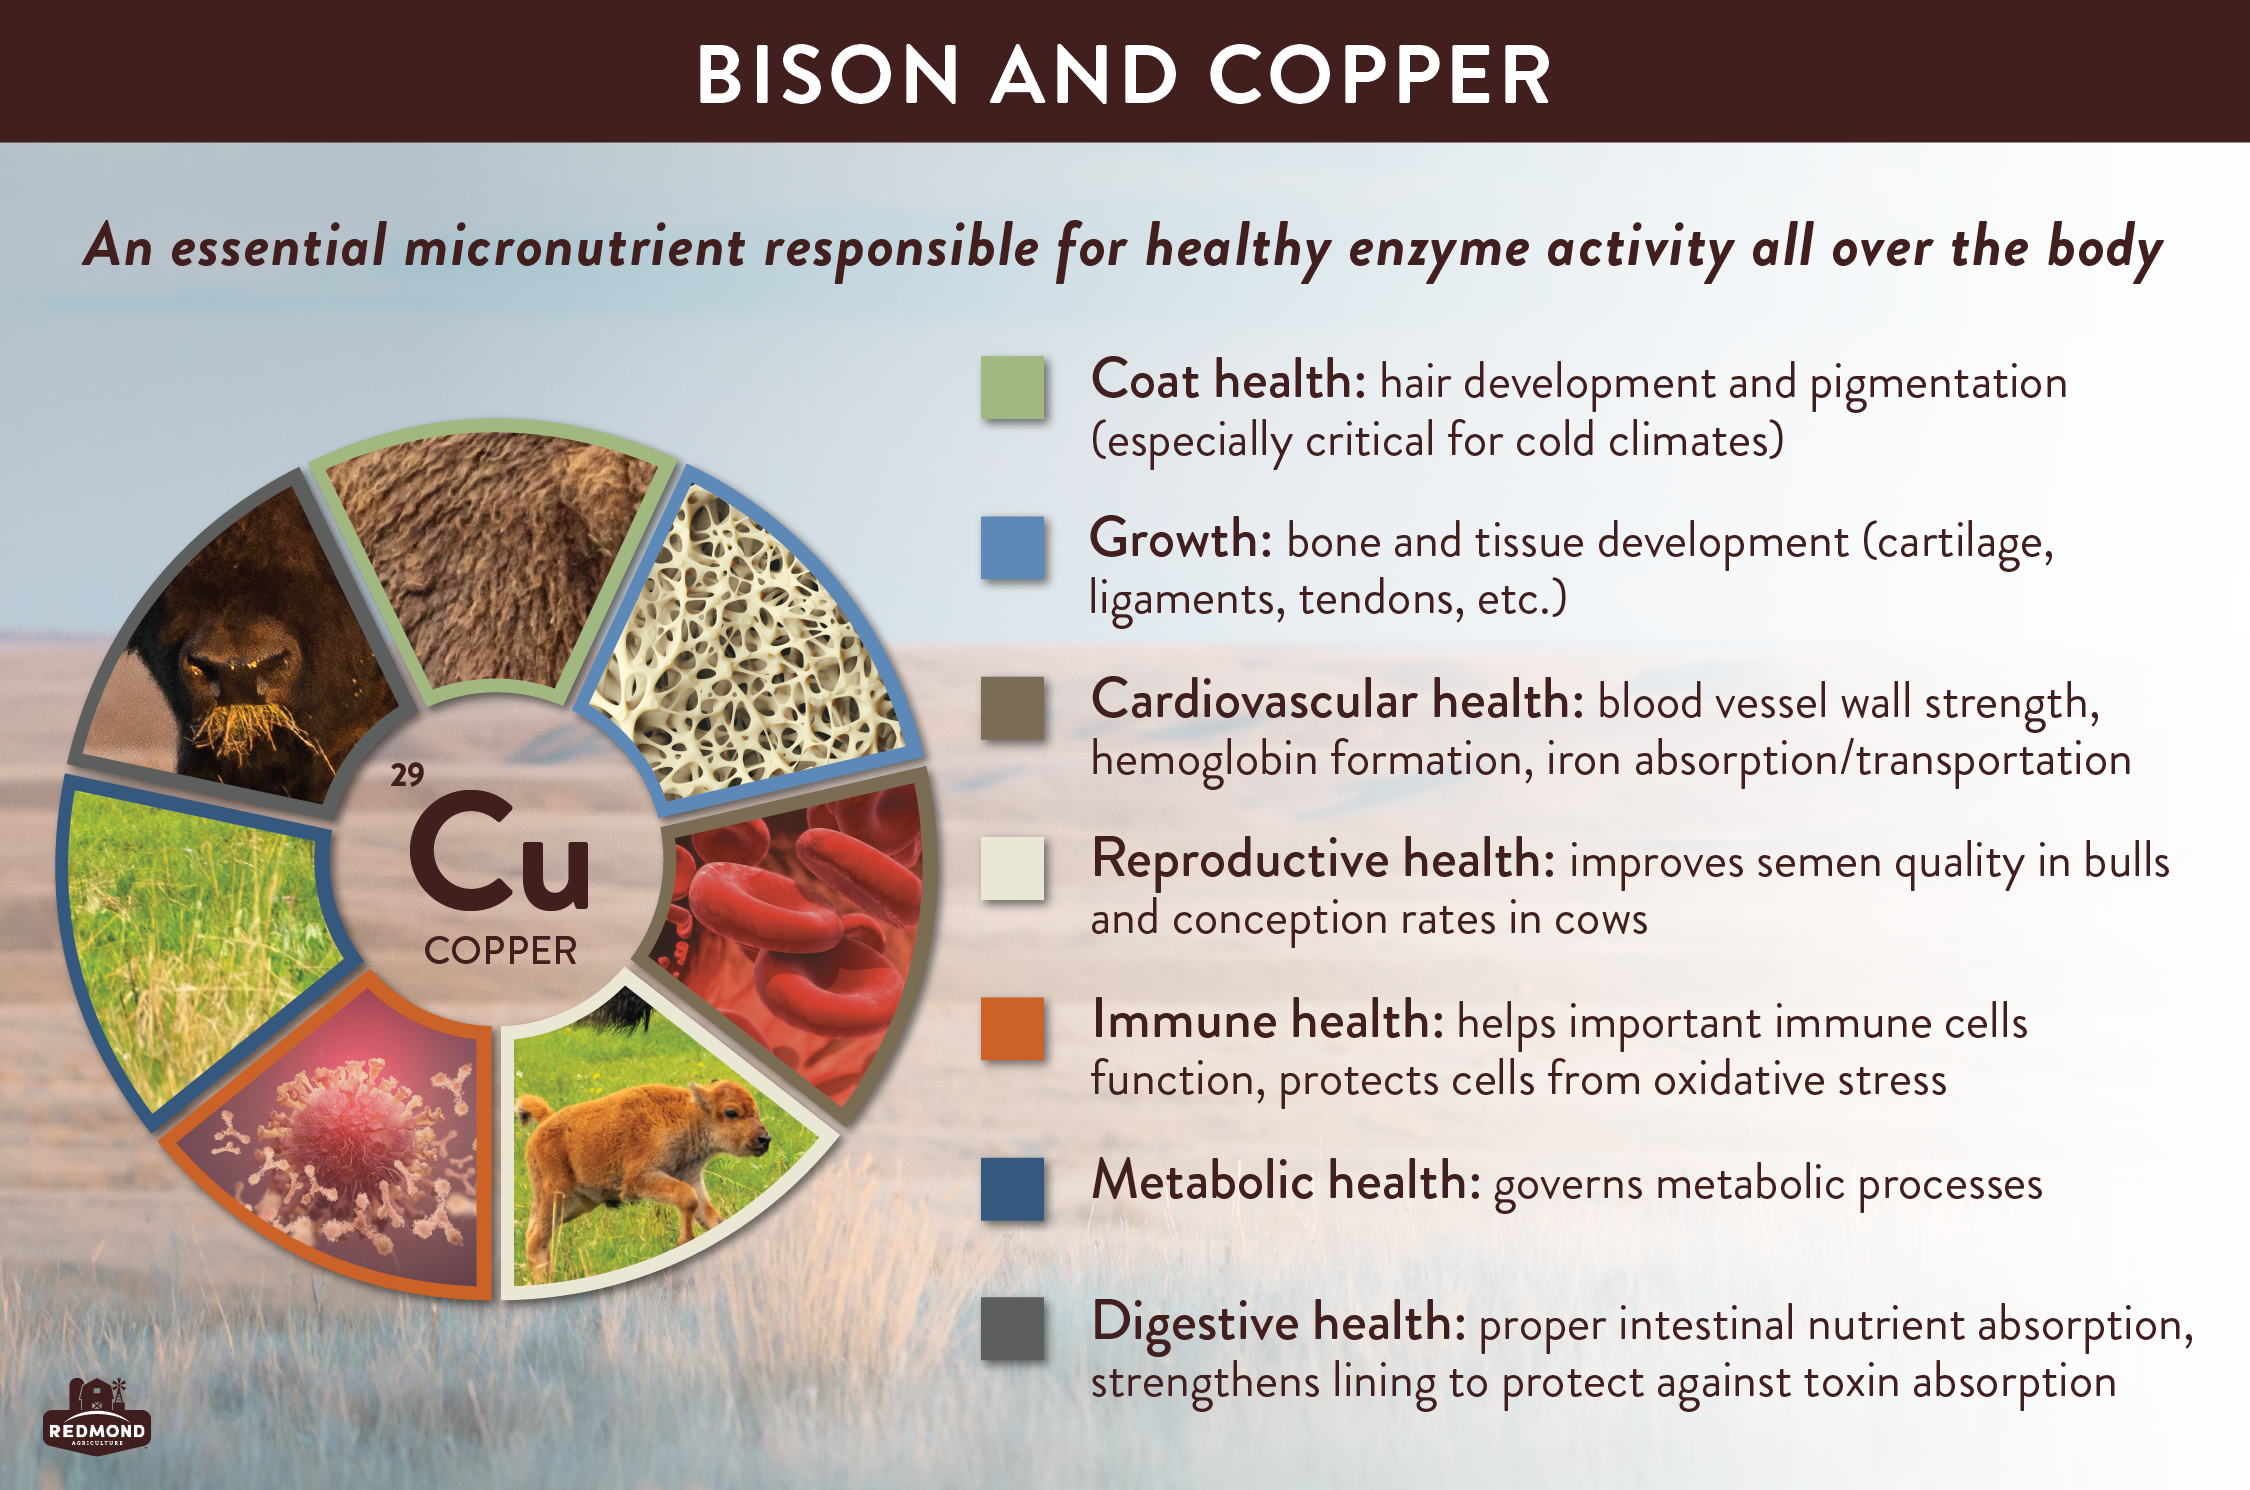 why do bison need copper